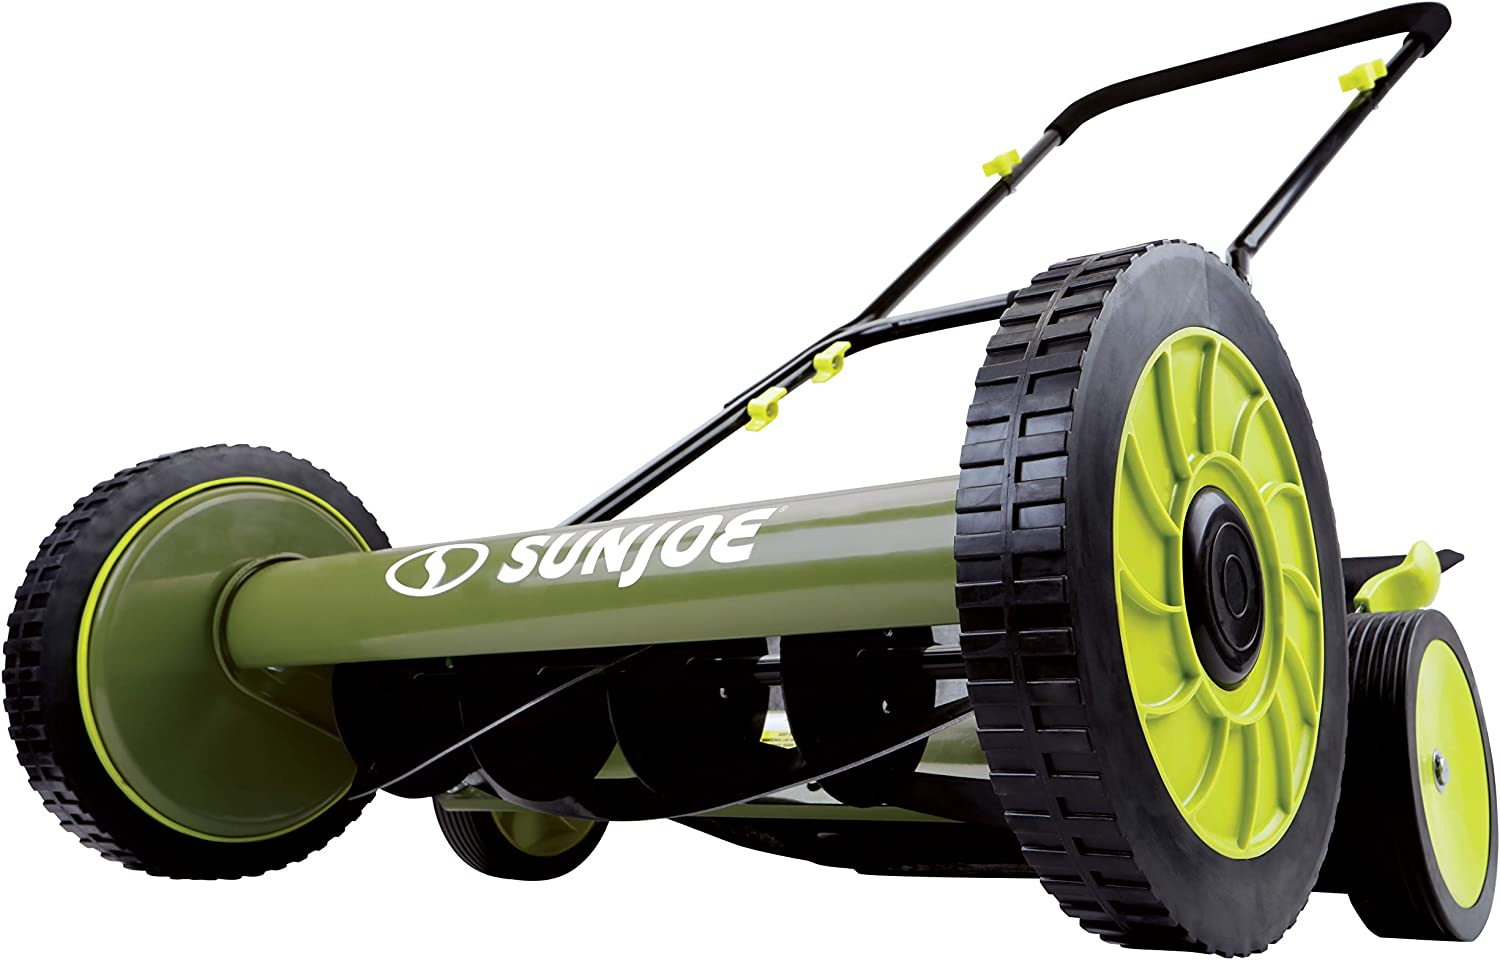 8. Snow Joe MJ501M 18-Inch Manual Reel Mower w/grass catcher